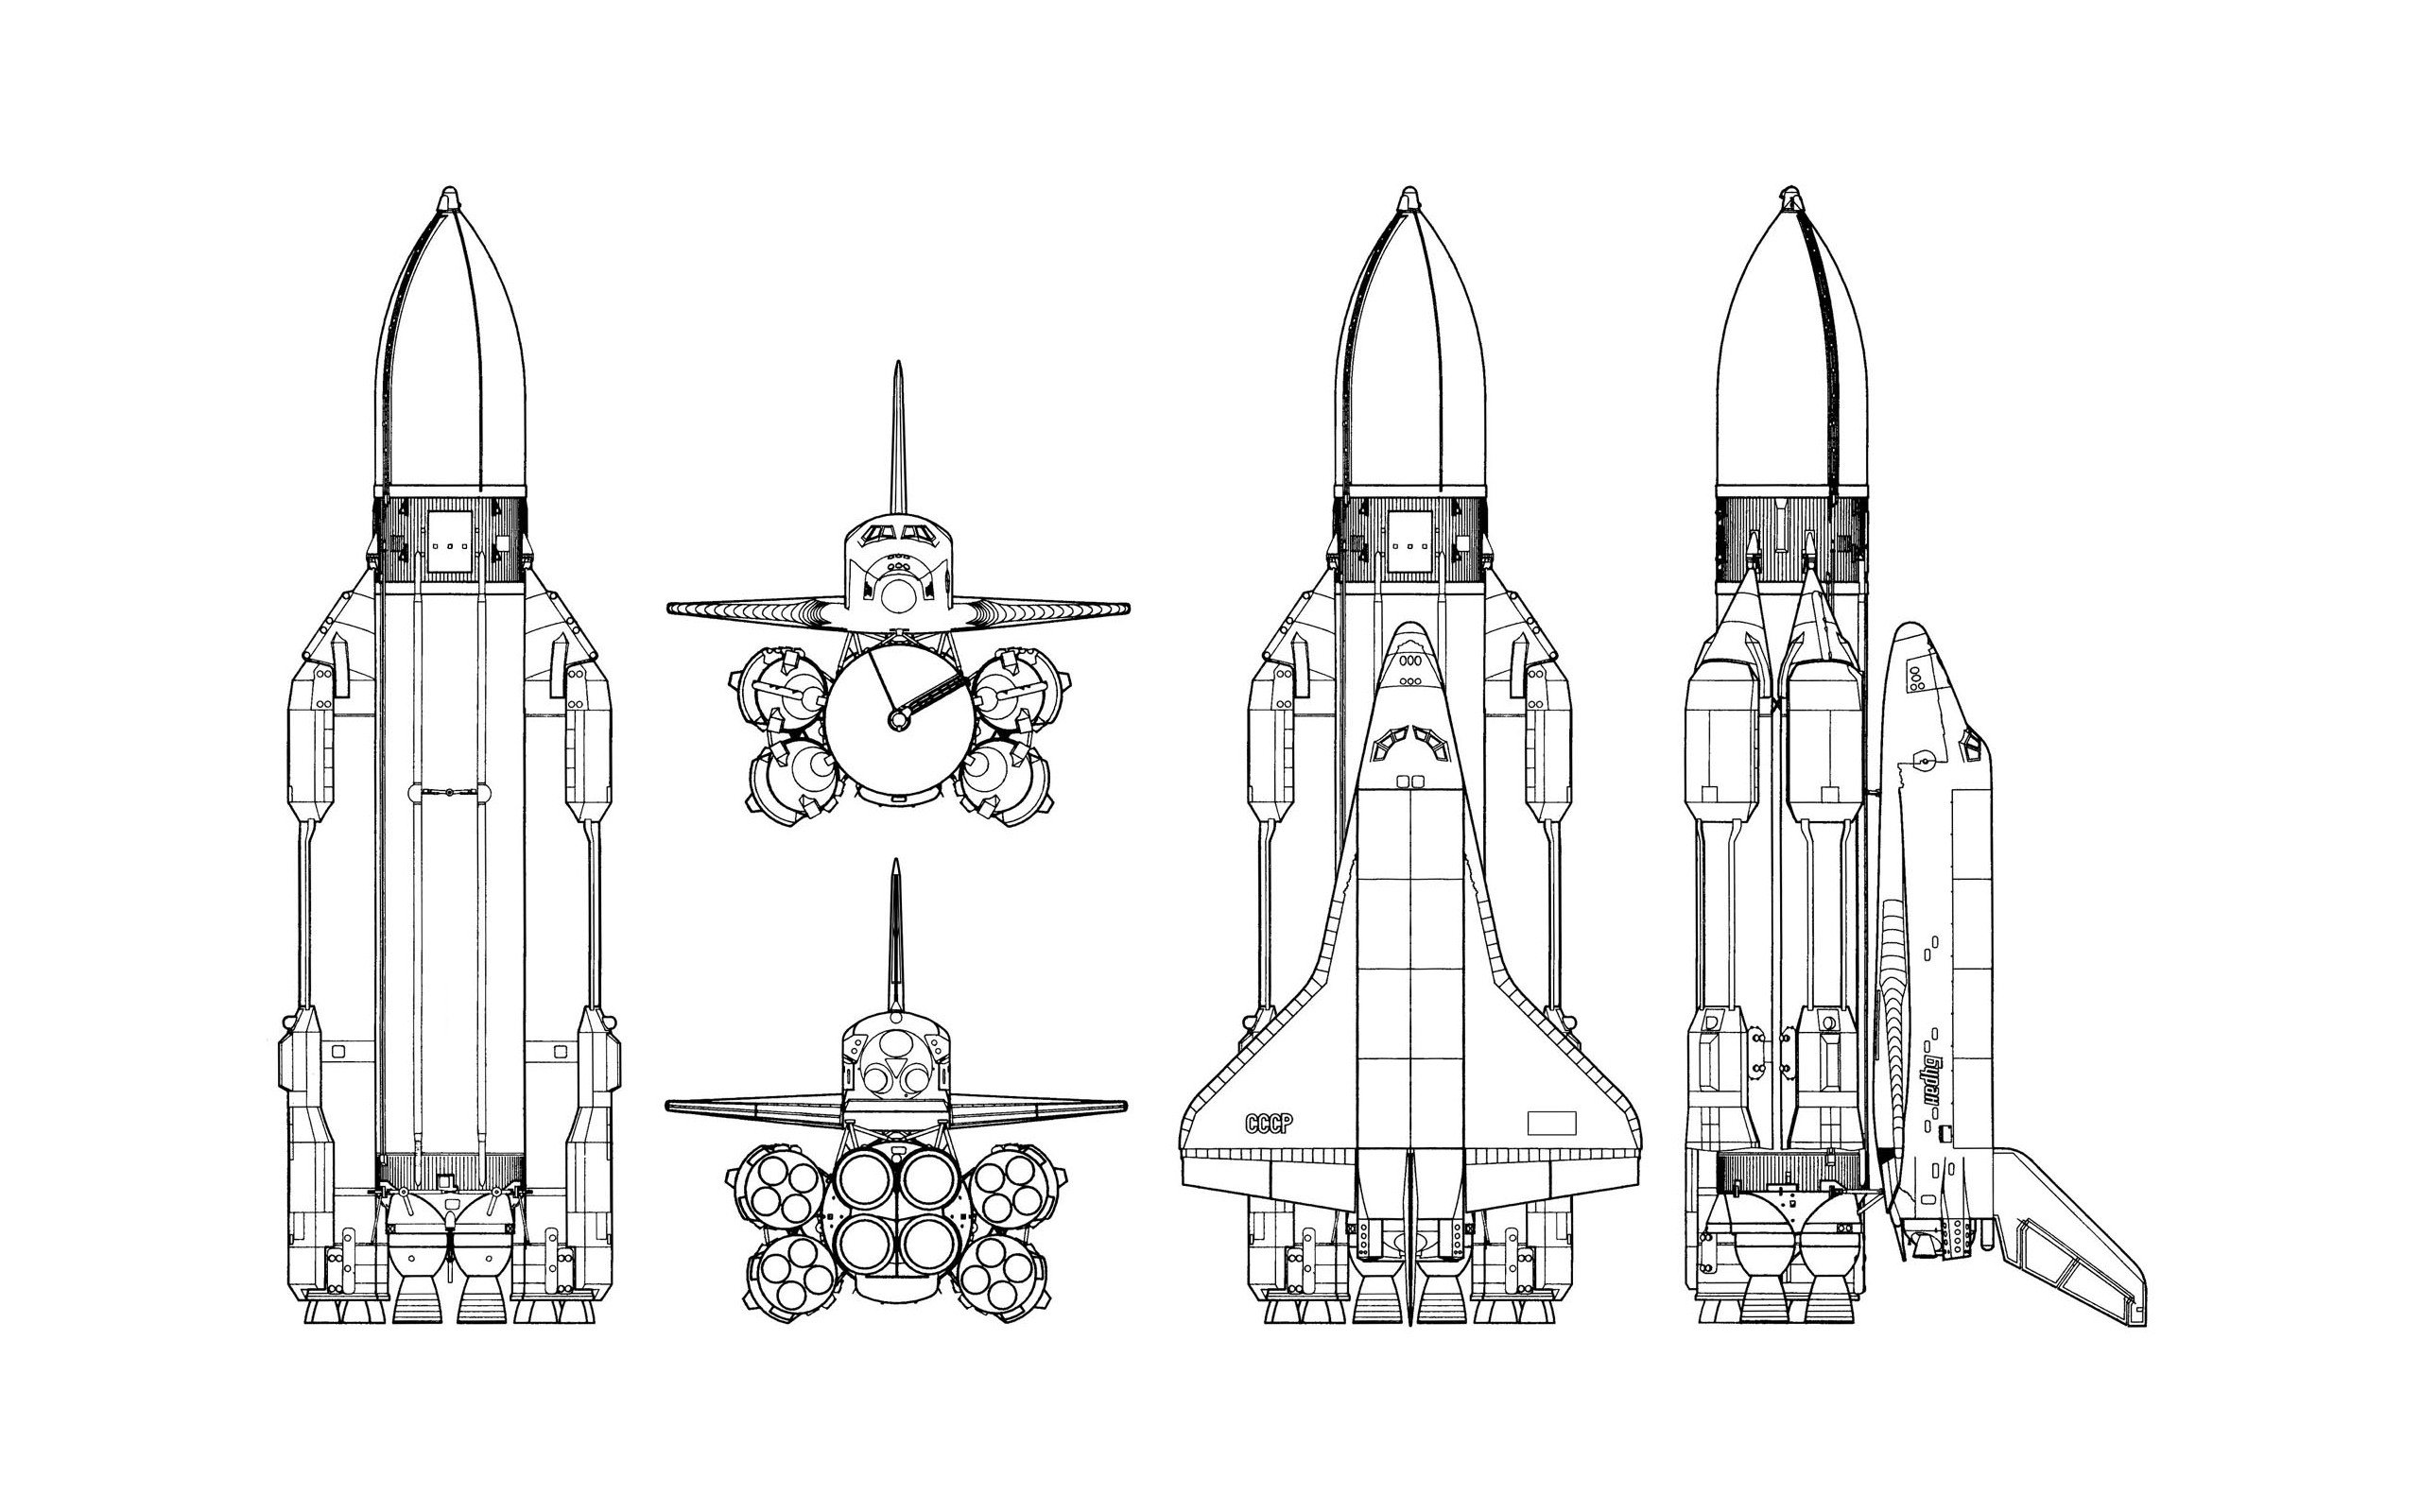 Space Shuttle Ussr Rockets Simple Background Schematic Buran Hd Wallpapers Desktop And